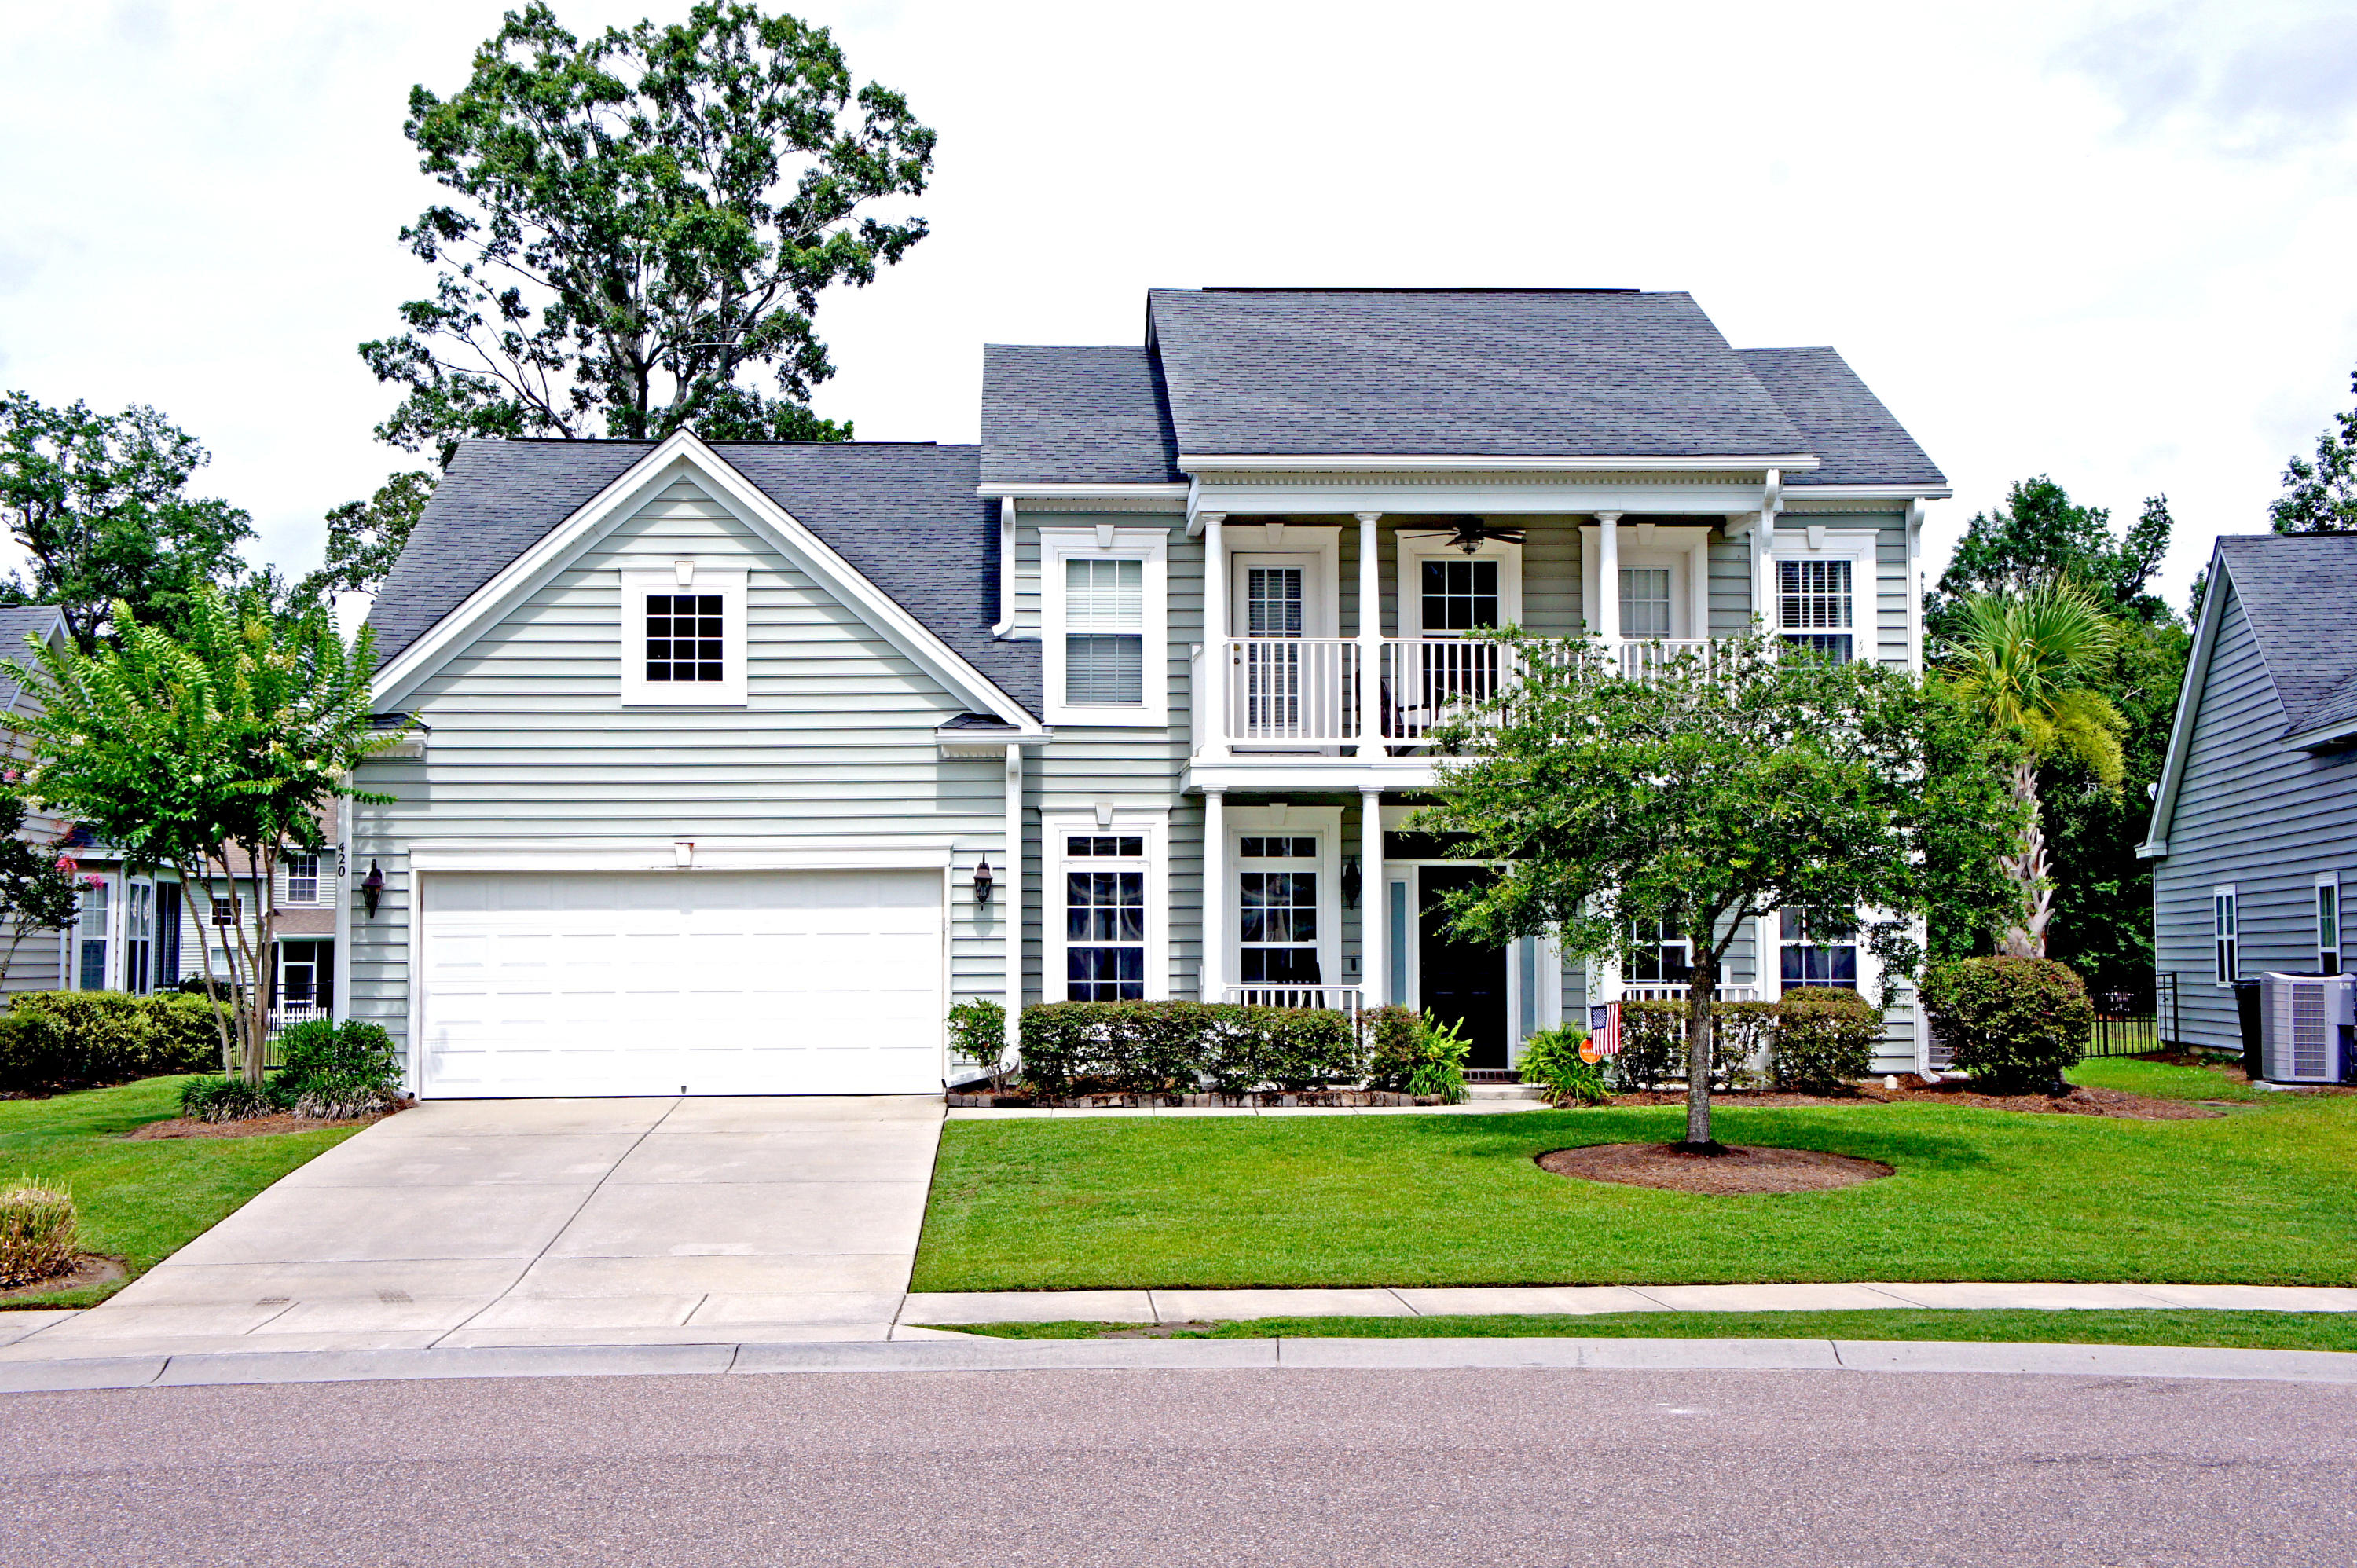 Home for sale 420 Sycamore Shade Street, Grand Oaks Plantation, West Ashley, SC